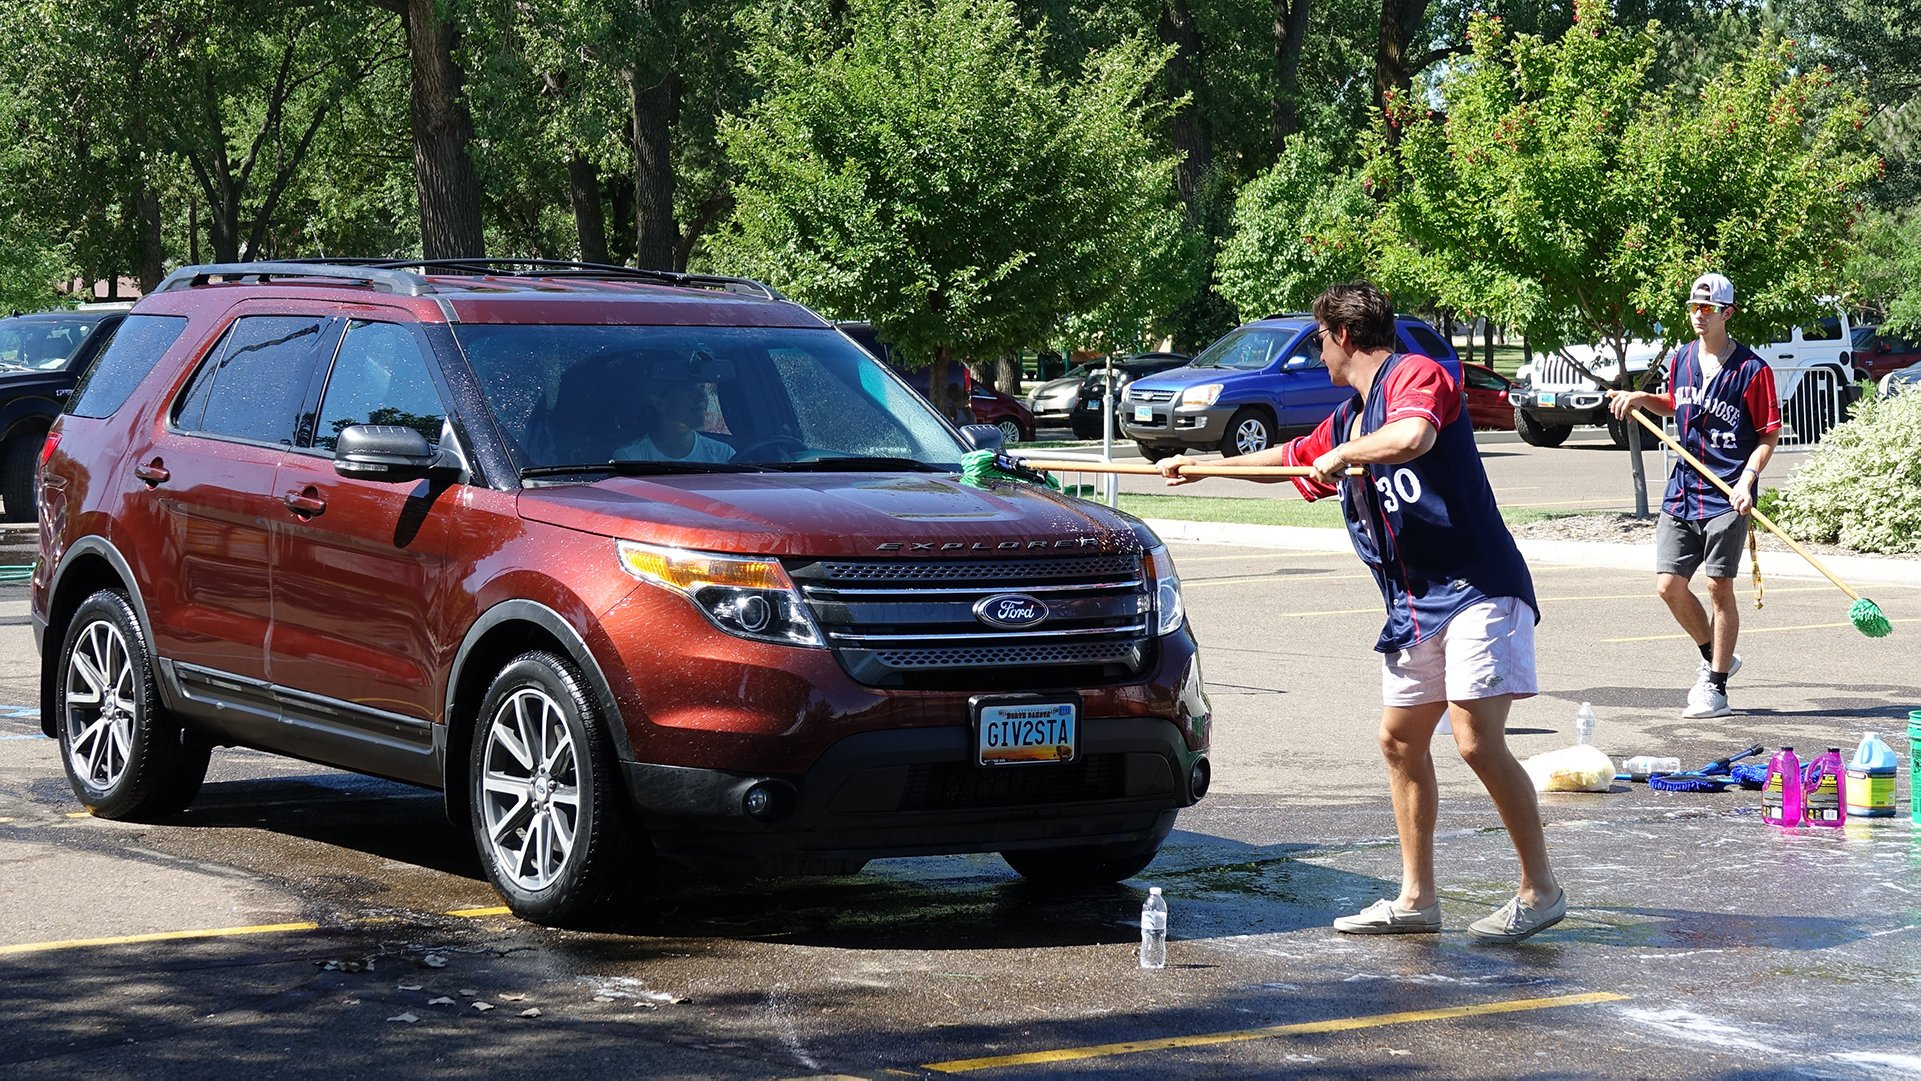 Eide Ford and Eide Chrysler washed cars with the Bismarck Larks and Bobcats to raise money for public schools.